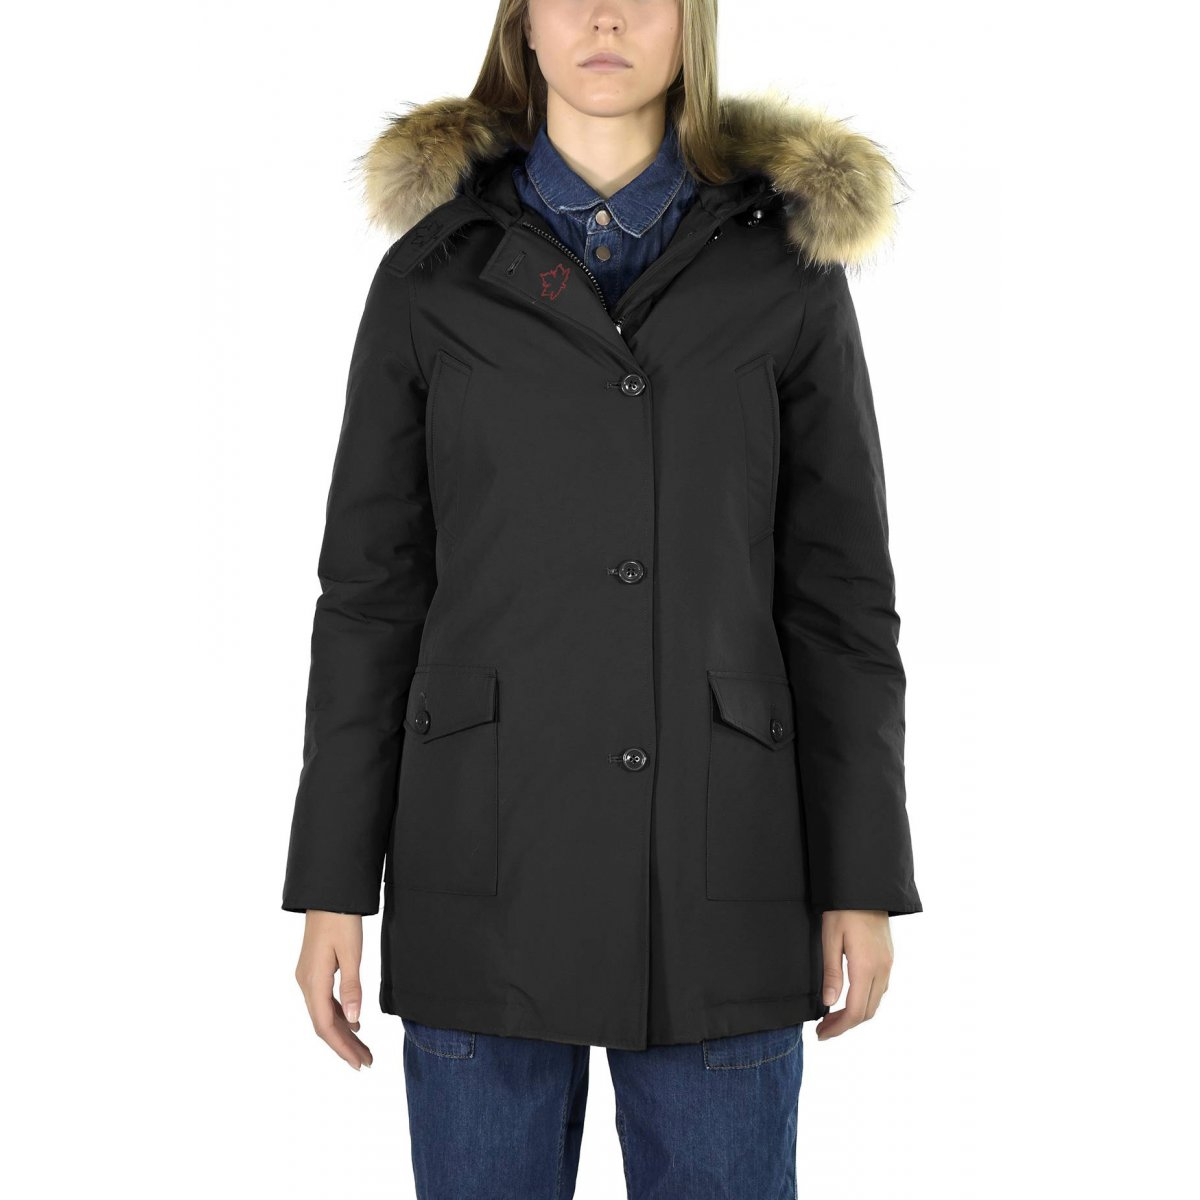 codice promozionale a75c4 9bc1f Giacca Donna Lindsay - Classic Parkas Canadian Women